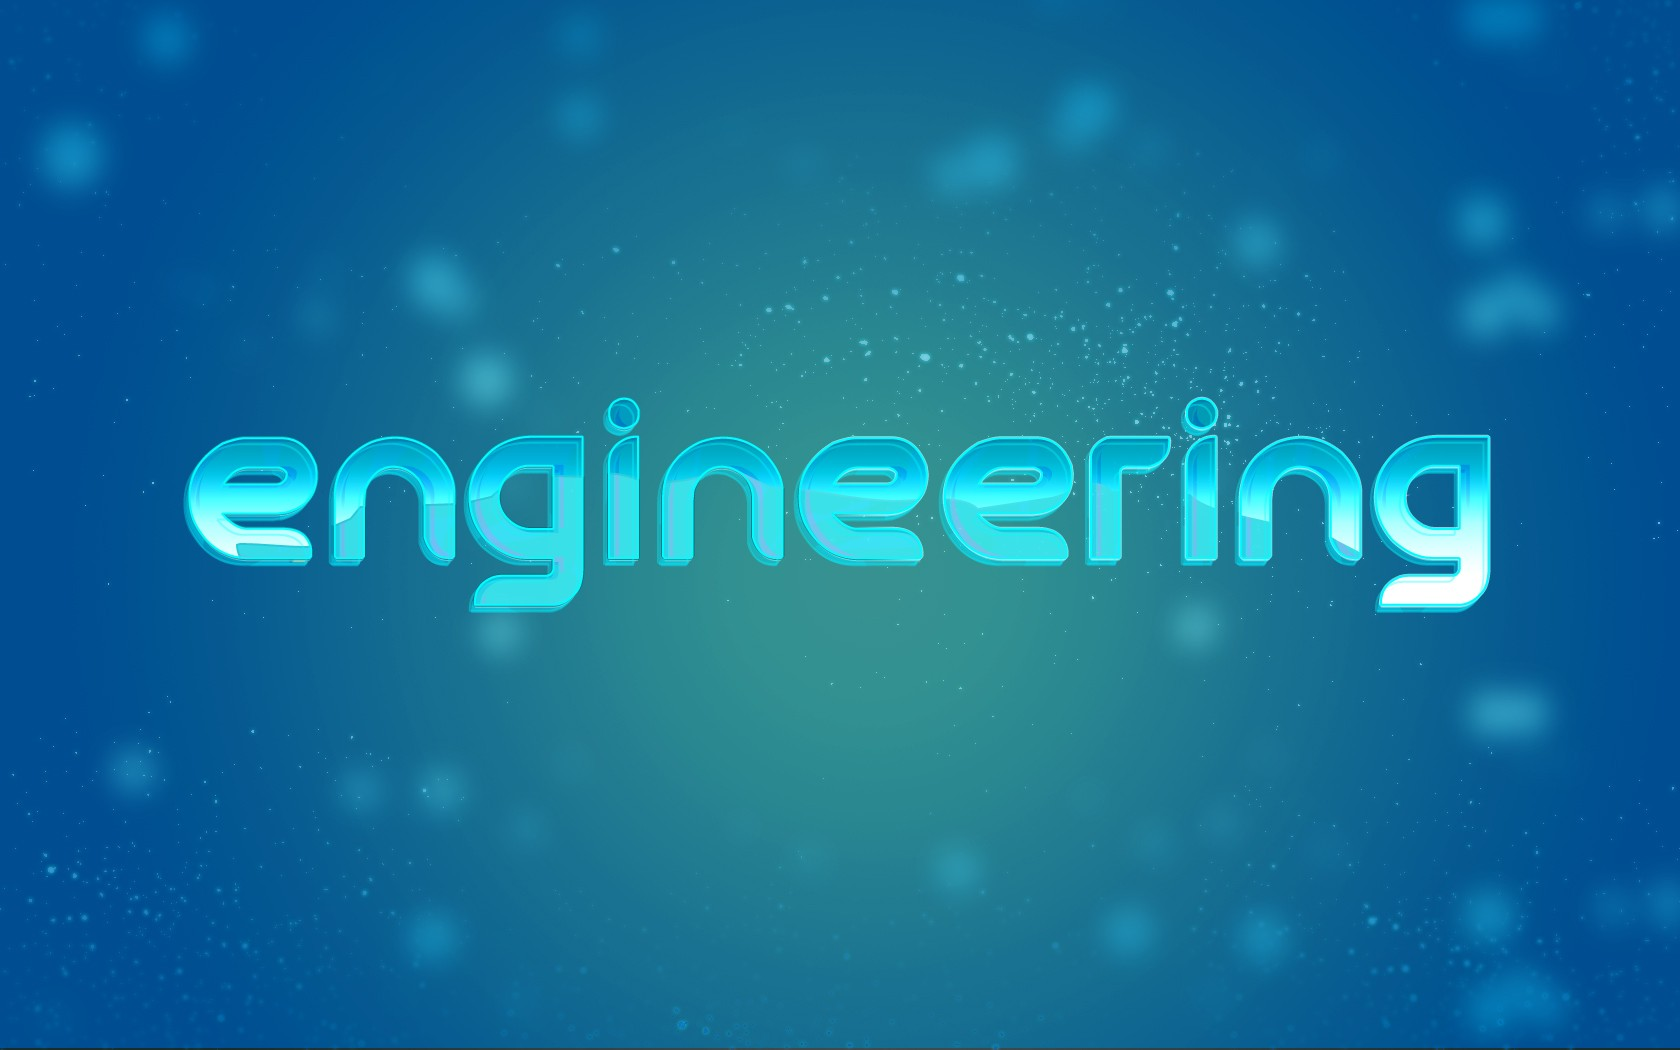 civil engineering wallpapers 1555 - photo #5